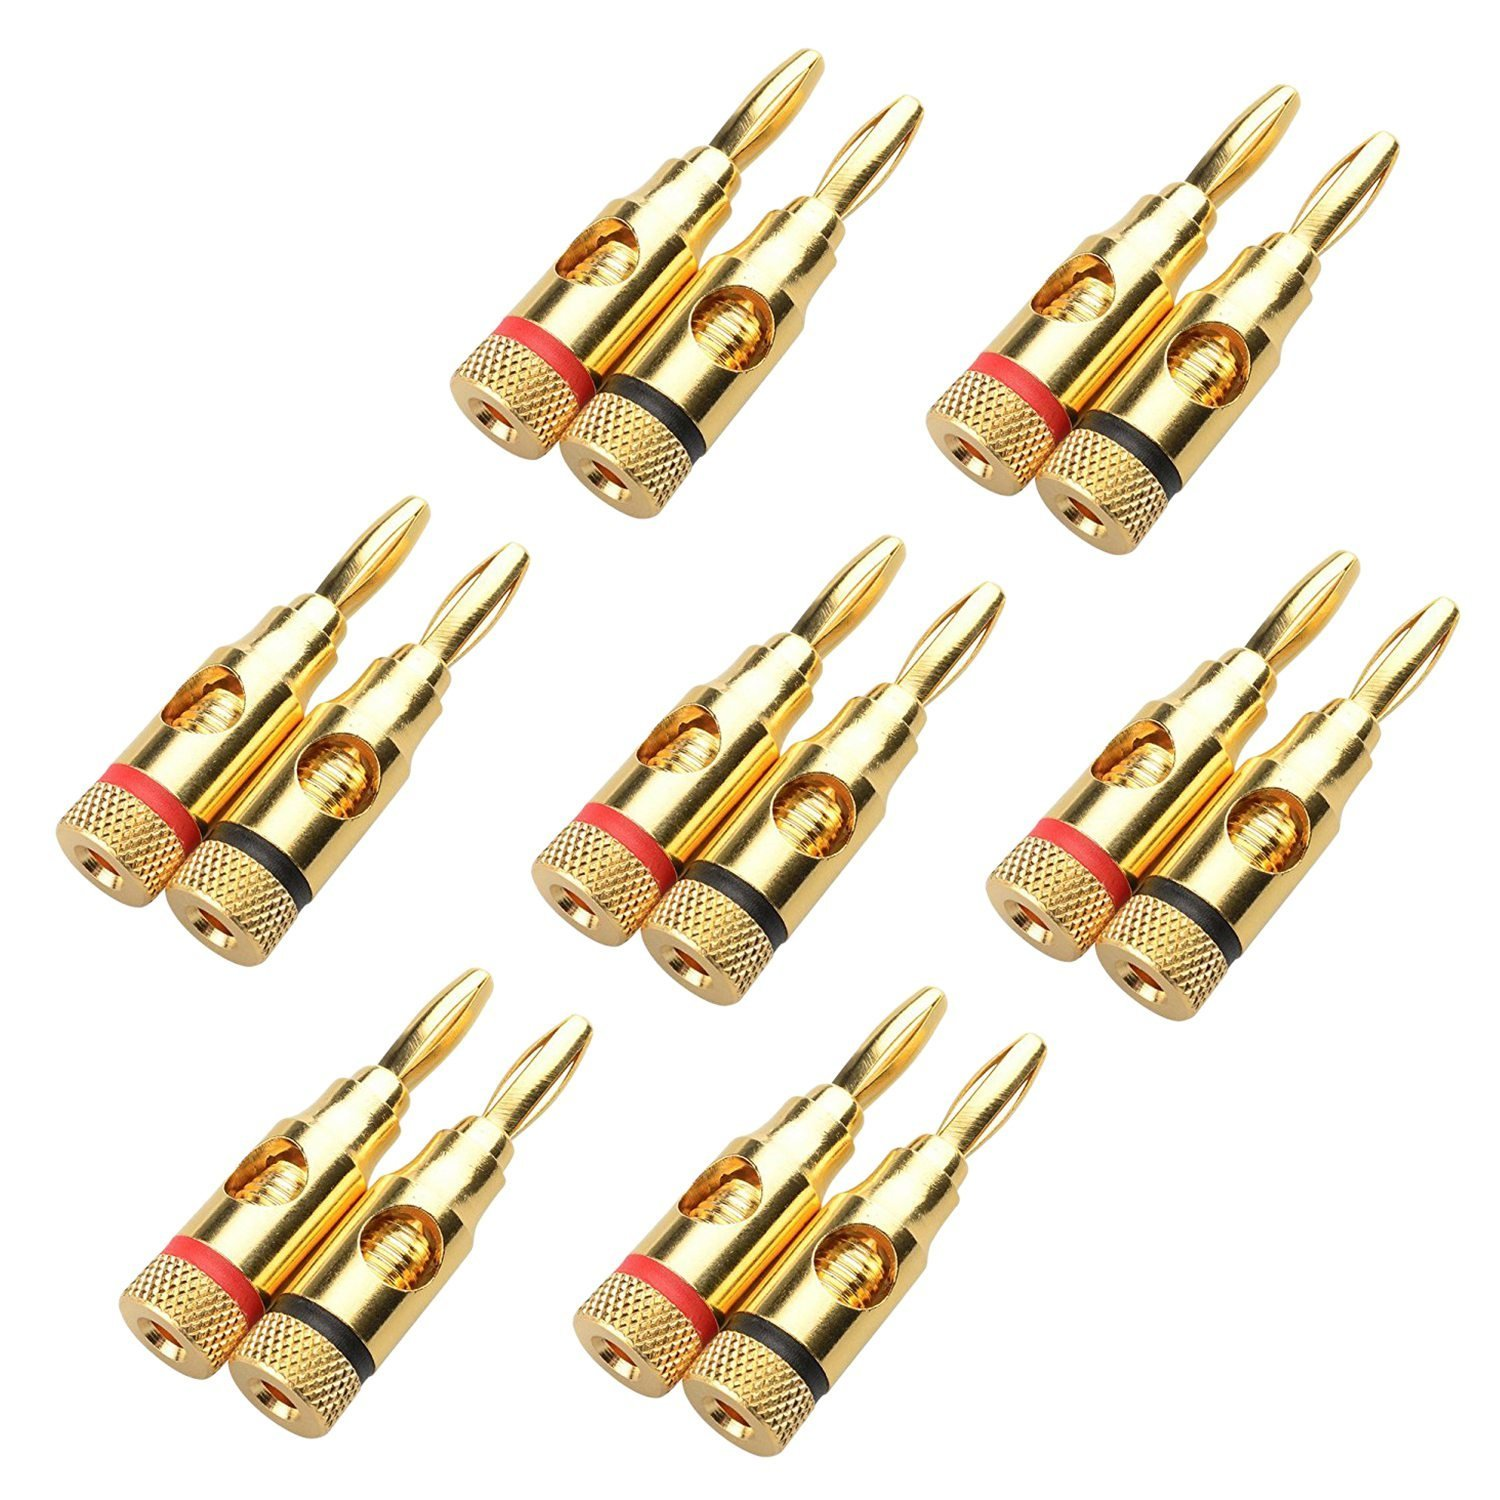 SODIAL(R) 7 Pairs, Open Screw Banana Plugs for Speaker Cable